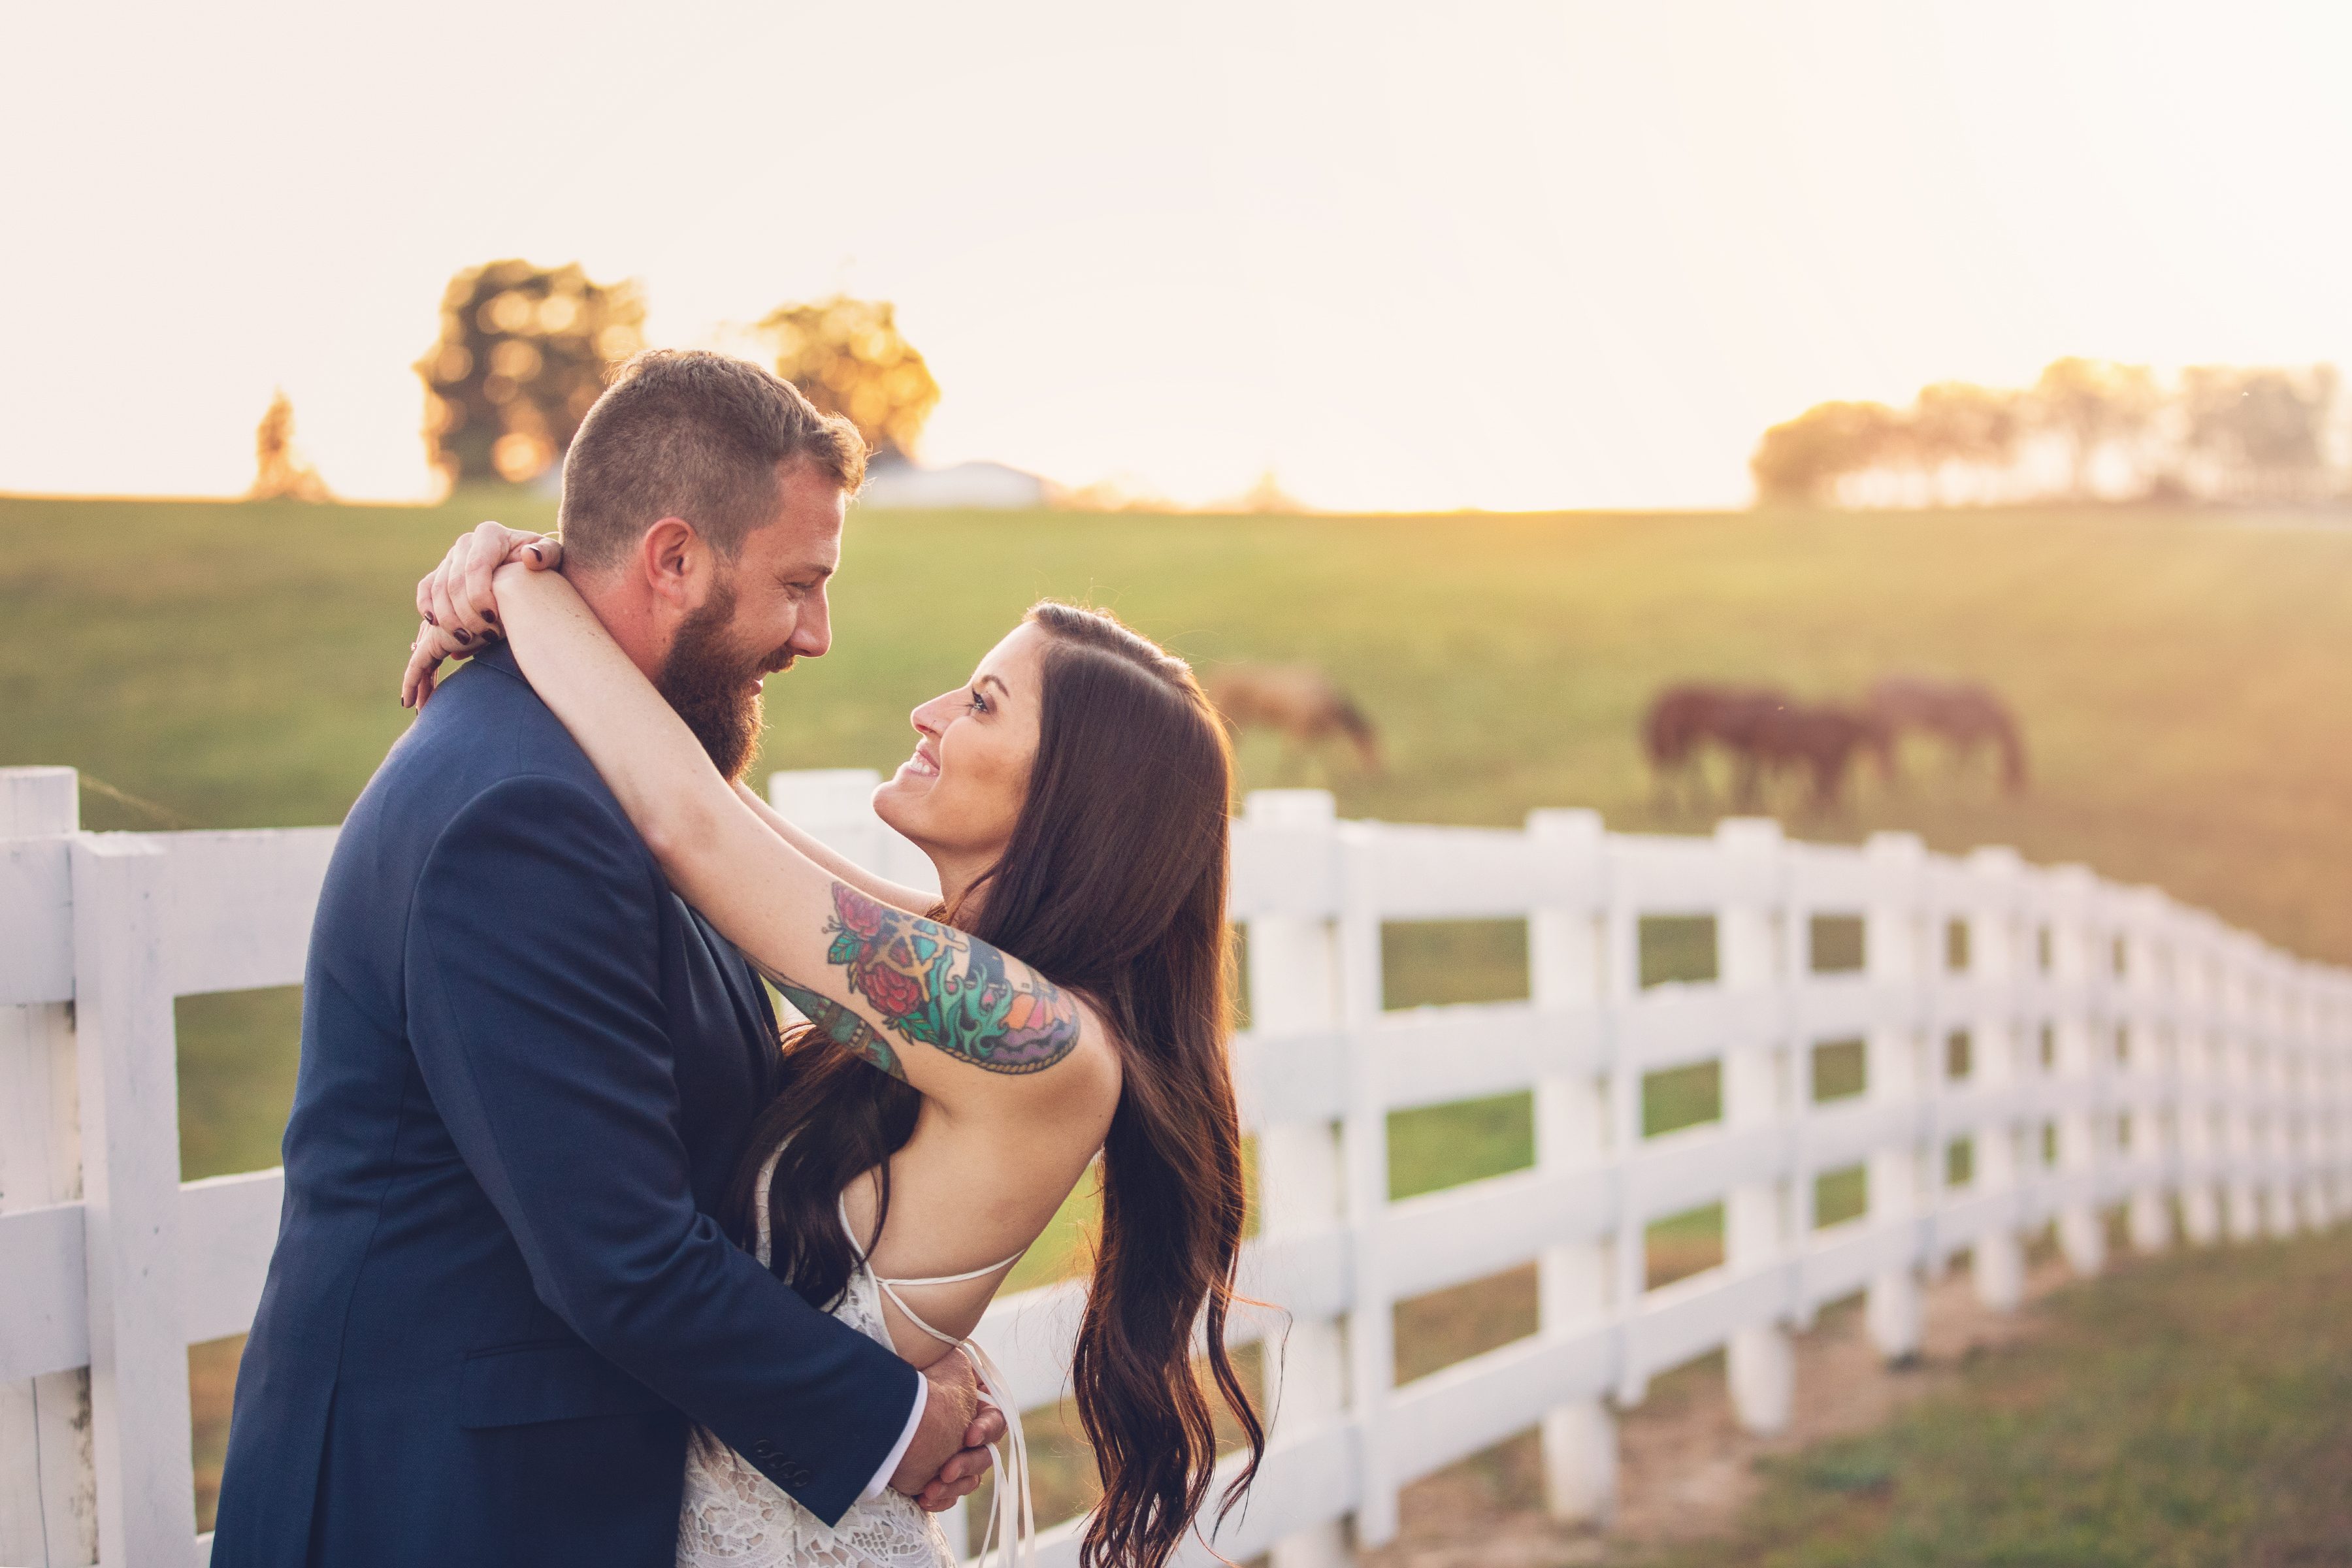 bride and groom irongate equestrian center